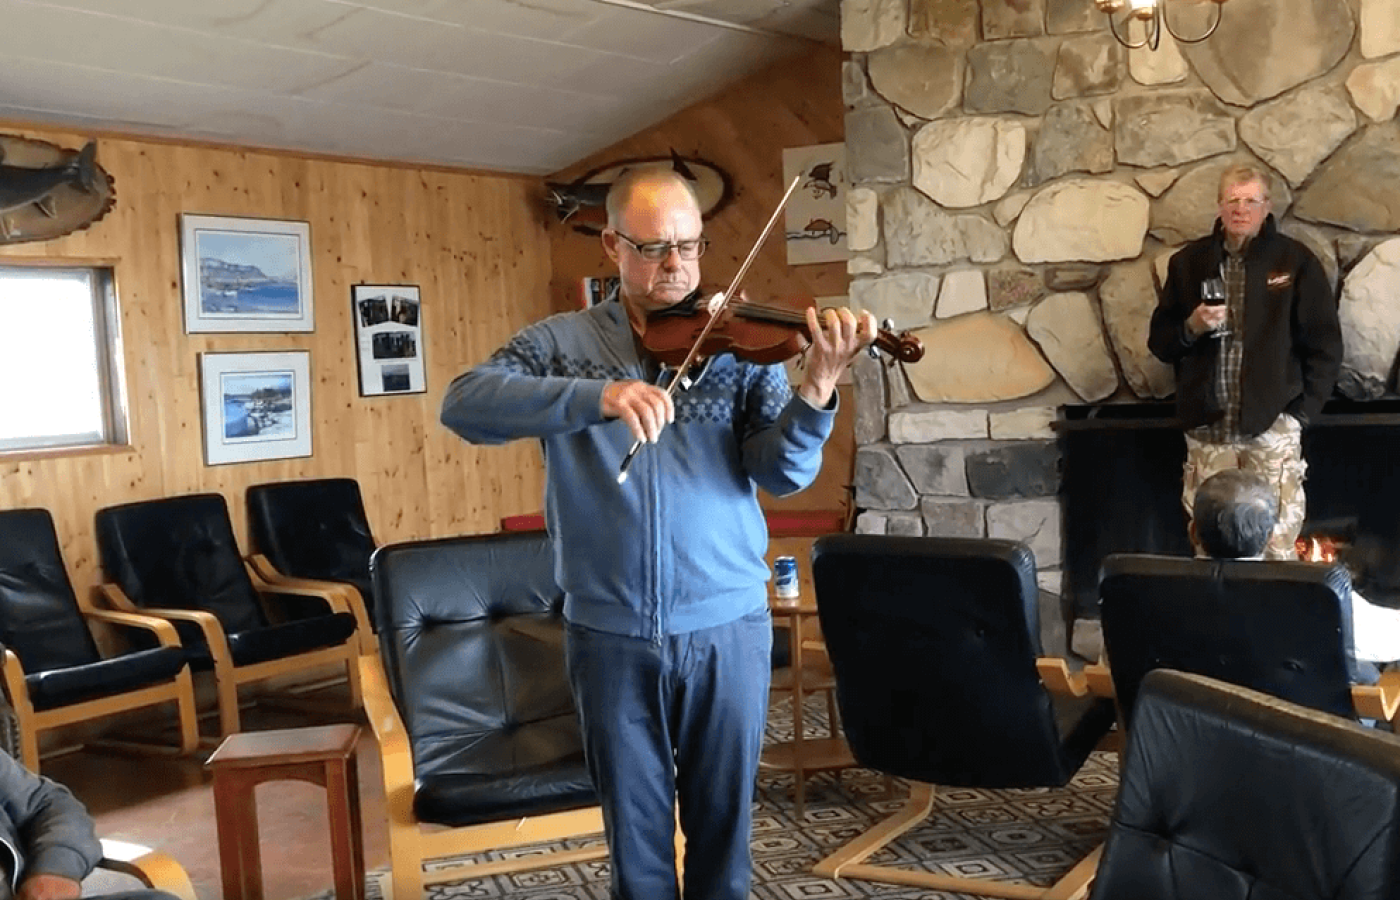 Joe Scheer plays the violin at Plummer's Arctic Lodge, on the Great Bear lake in the Northwest Territories